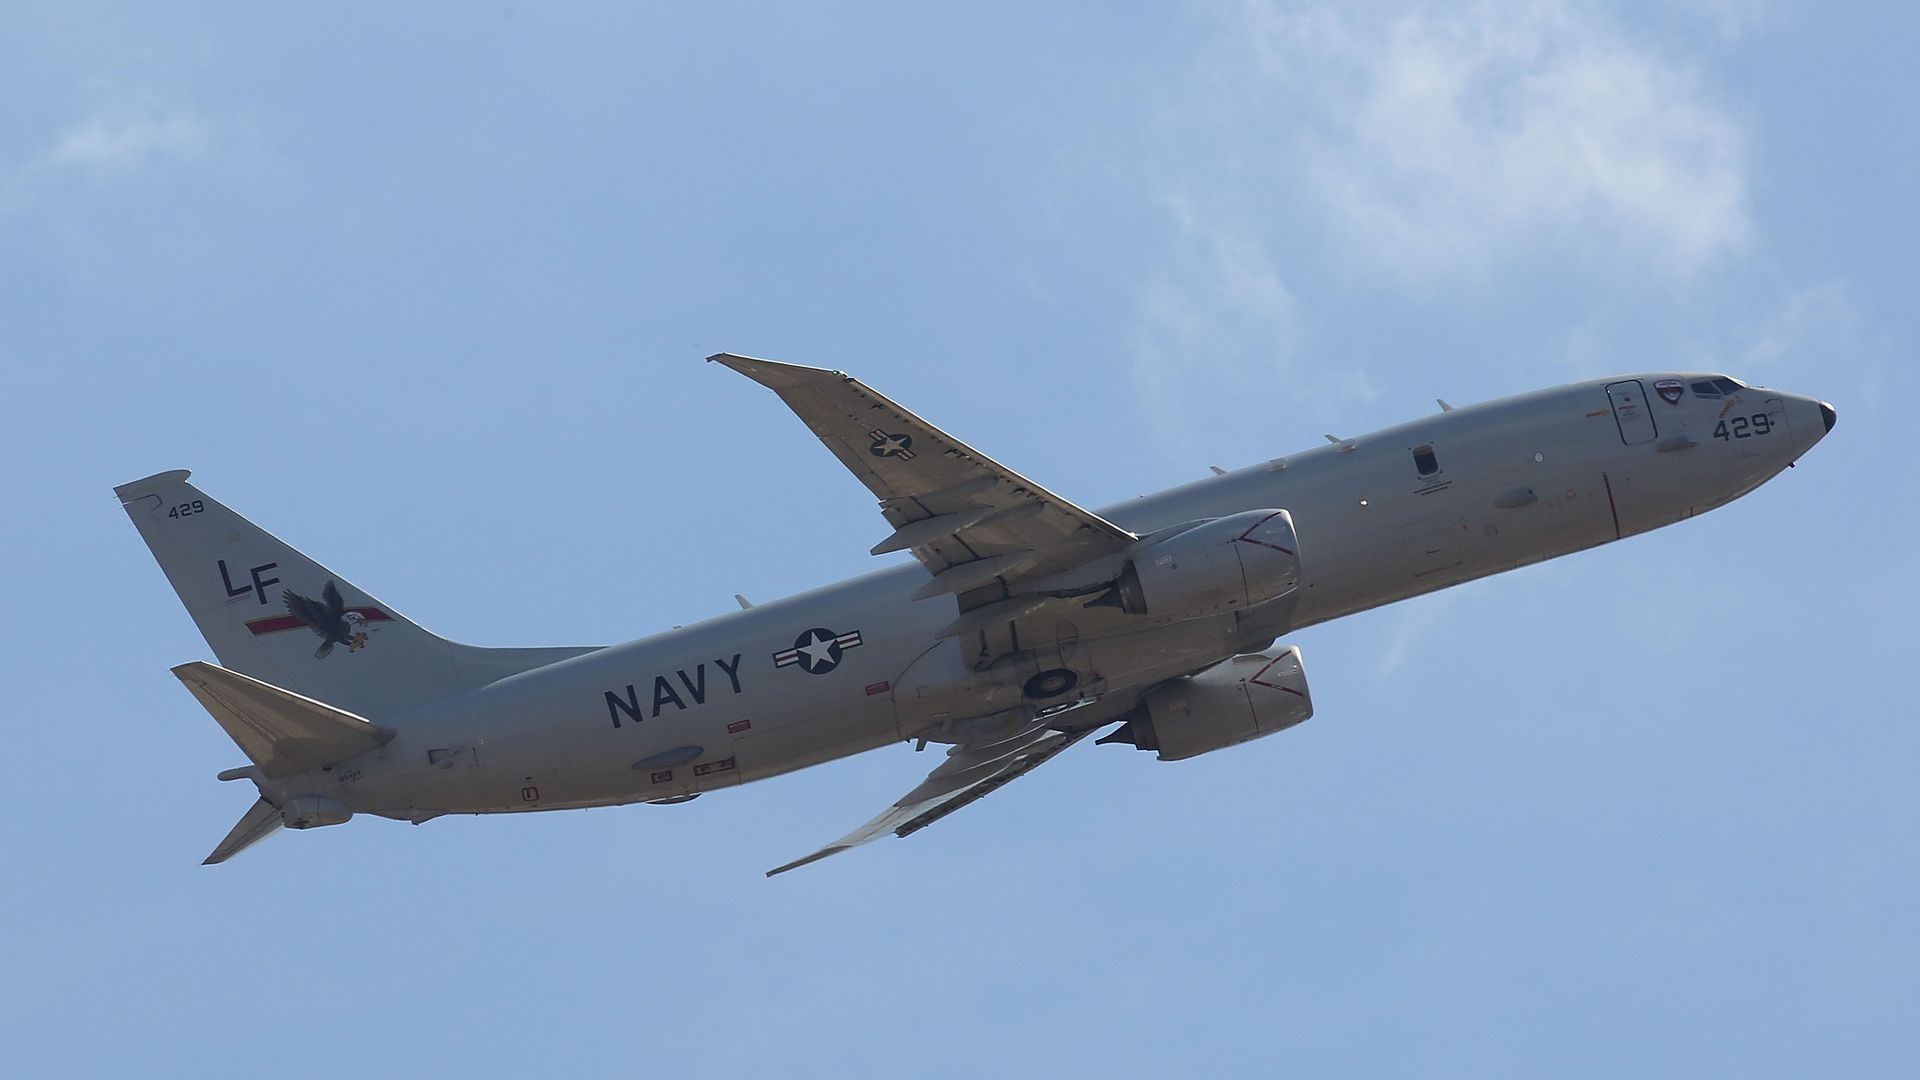 A US Navy P-8A Poseidon departs Perth's International Airport on March 28, 2014 in Perth, Australia.